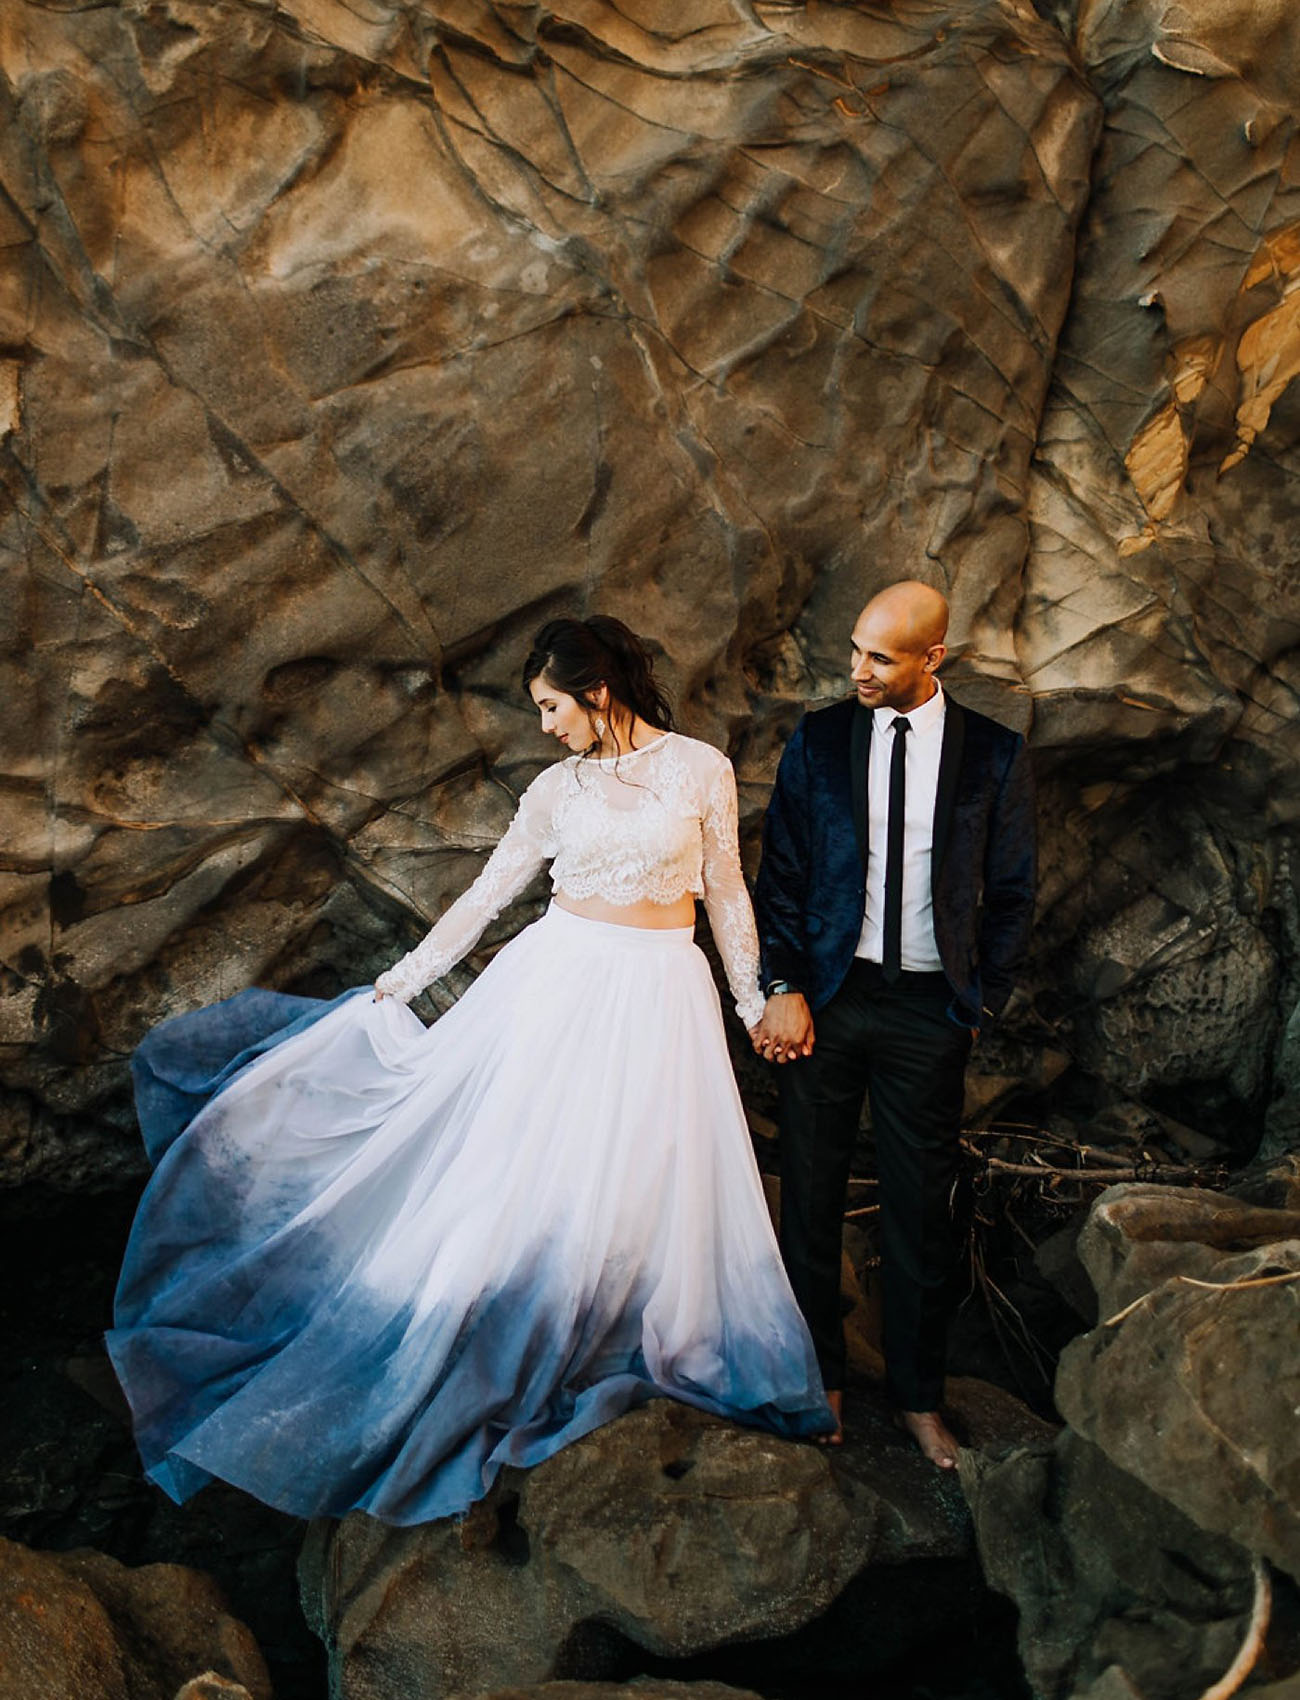 Helicopter Adventure Elopement Inspiration